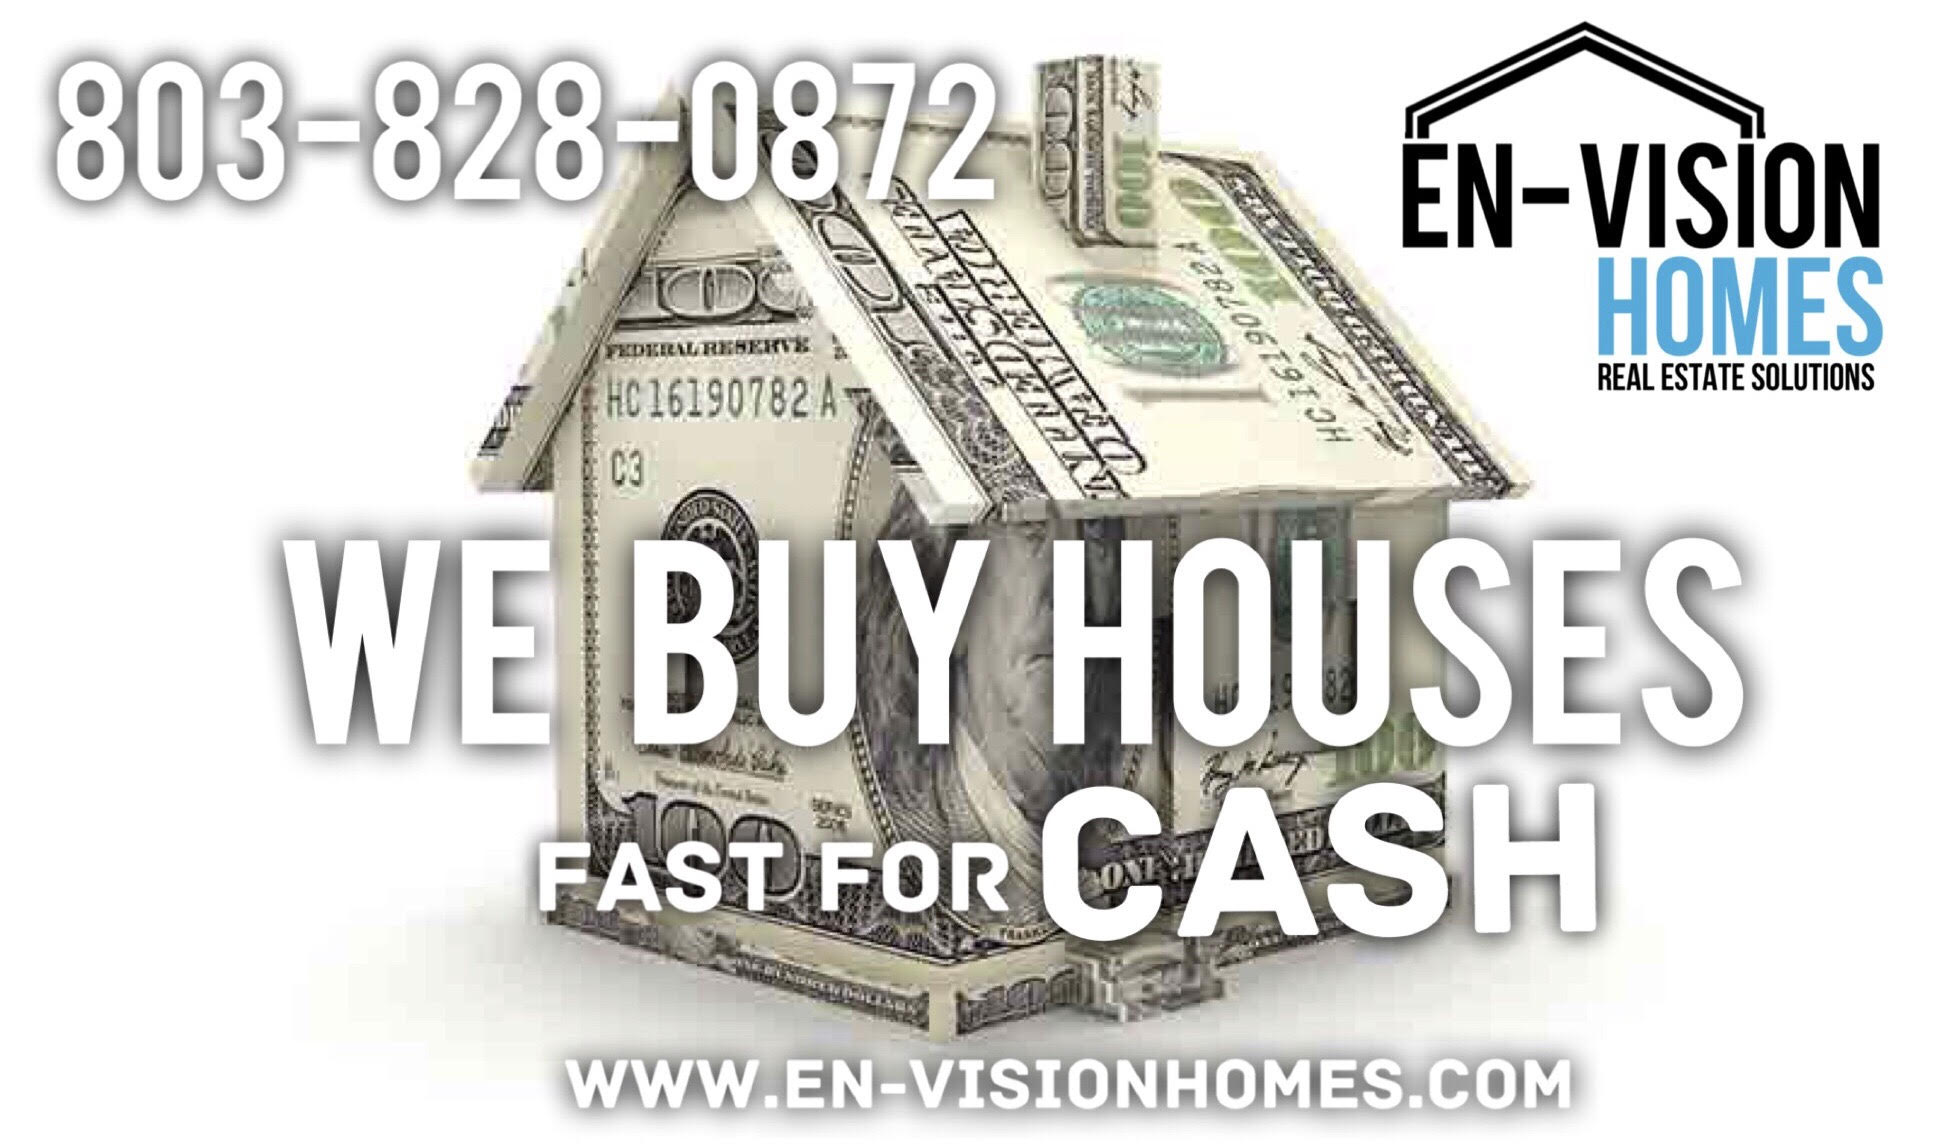 We Buy Houses Columbia SC - Local & Trusted